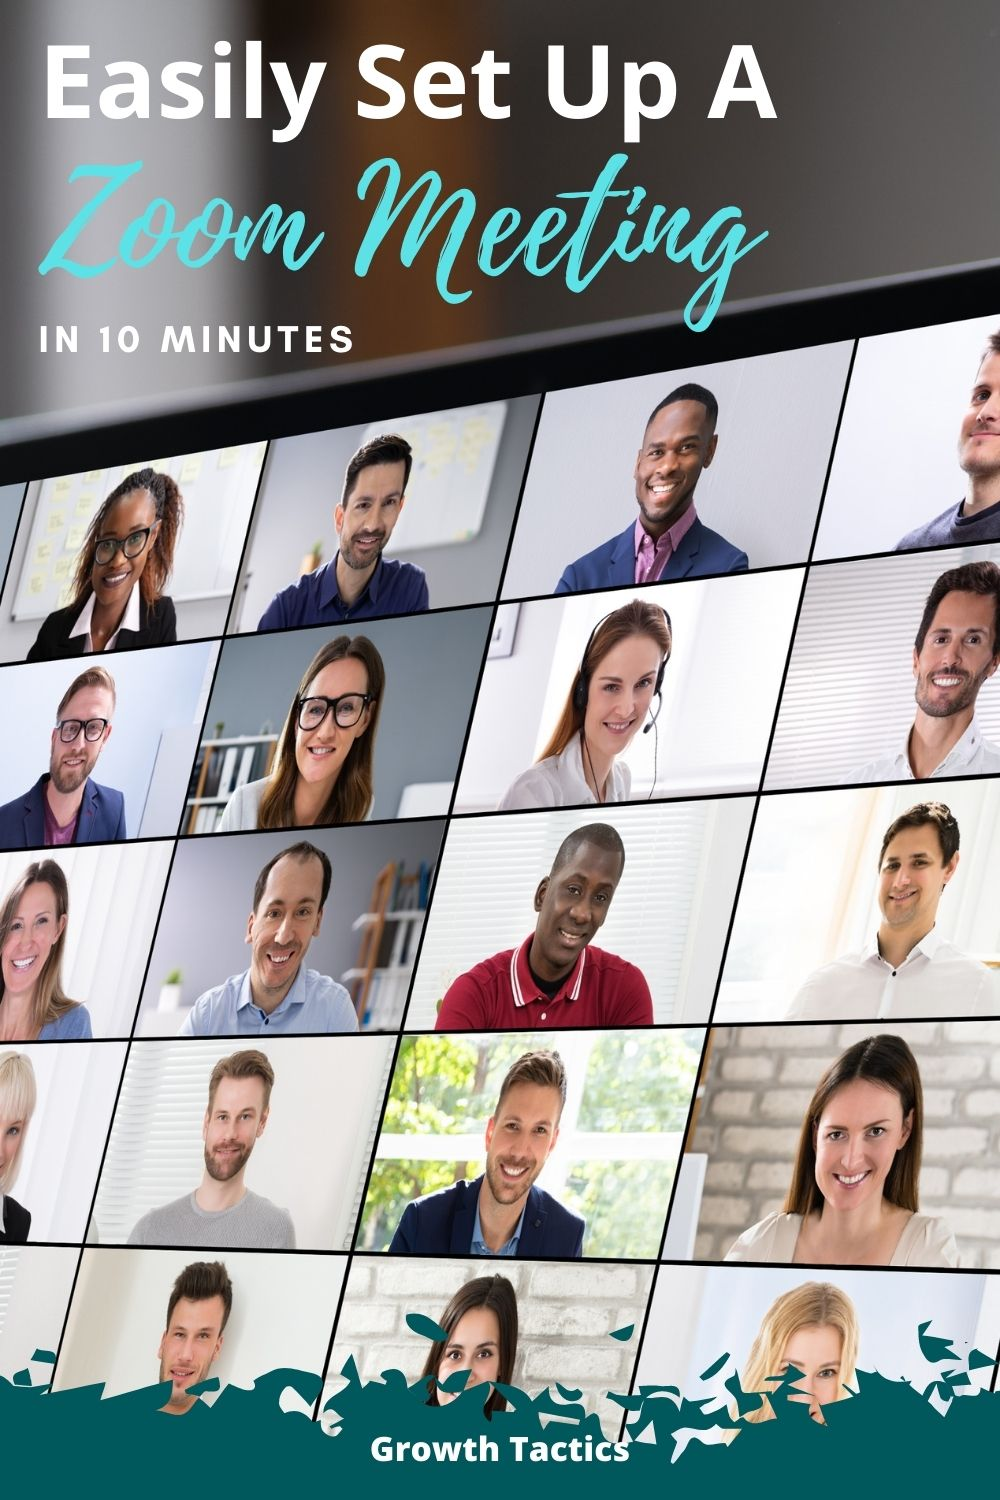 How To Painlessly Set Up A Zoom Meeting In 10 Minutes